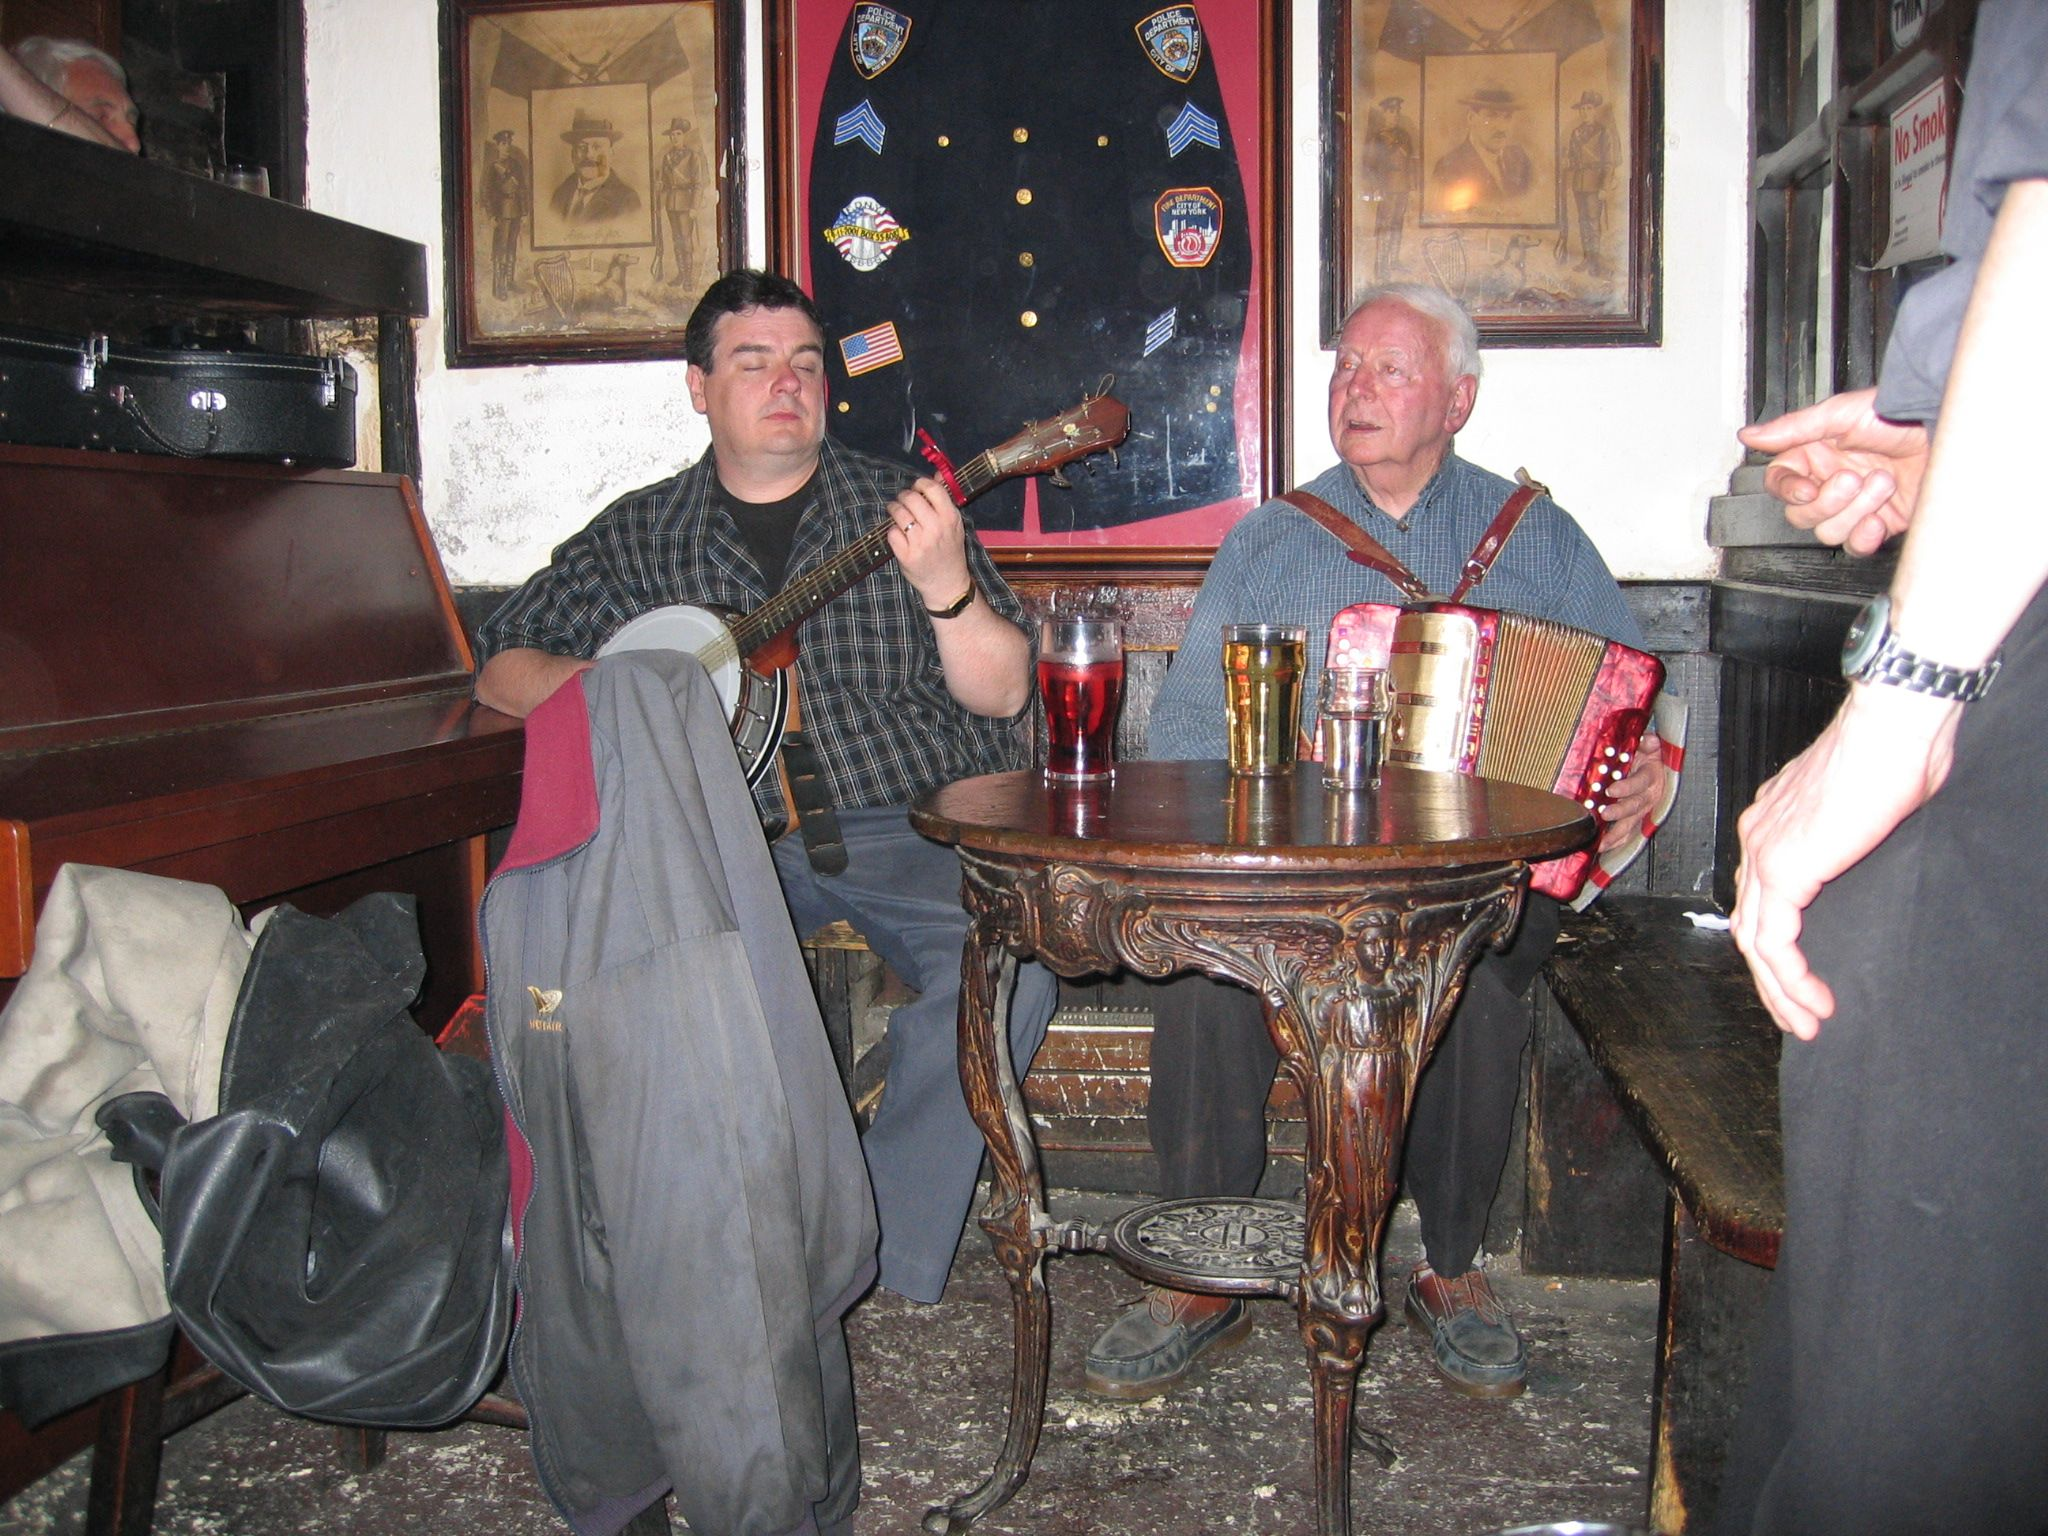 watching a session at Durty Nellies in Shannon Ireland 2006